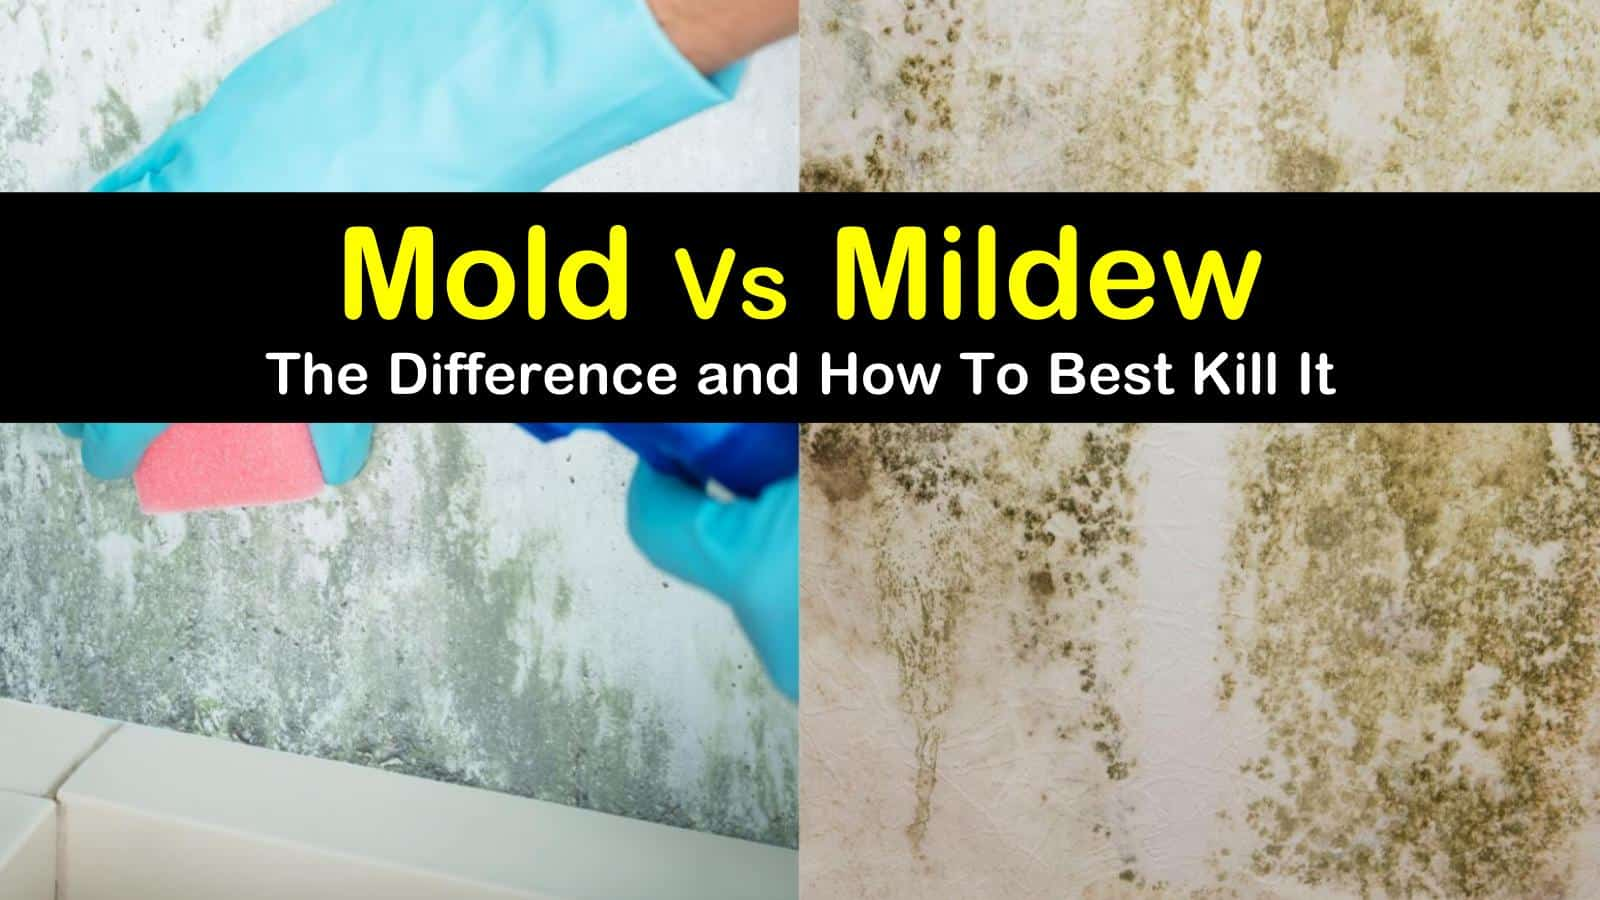 Mold Vs Mildew The Difference Between Mold And Mildew